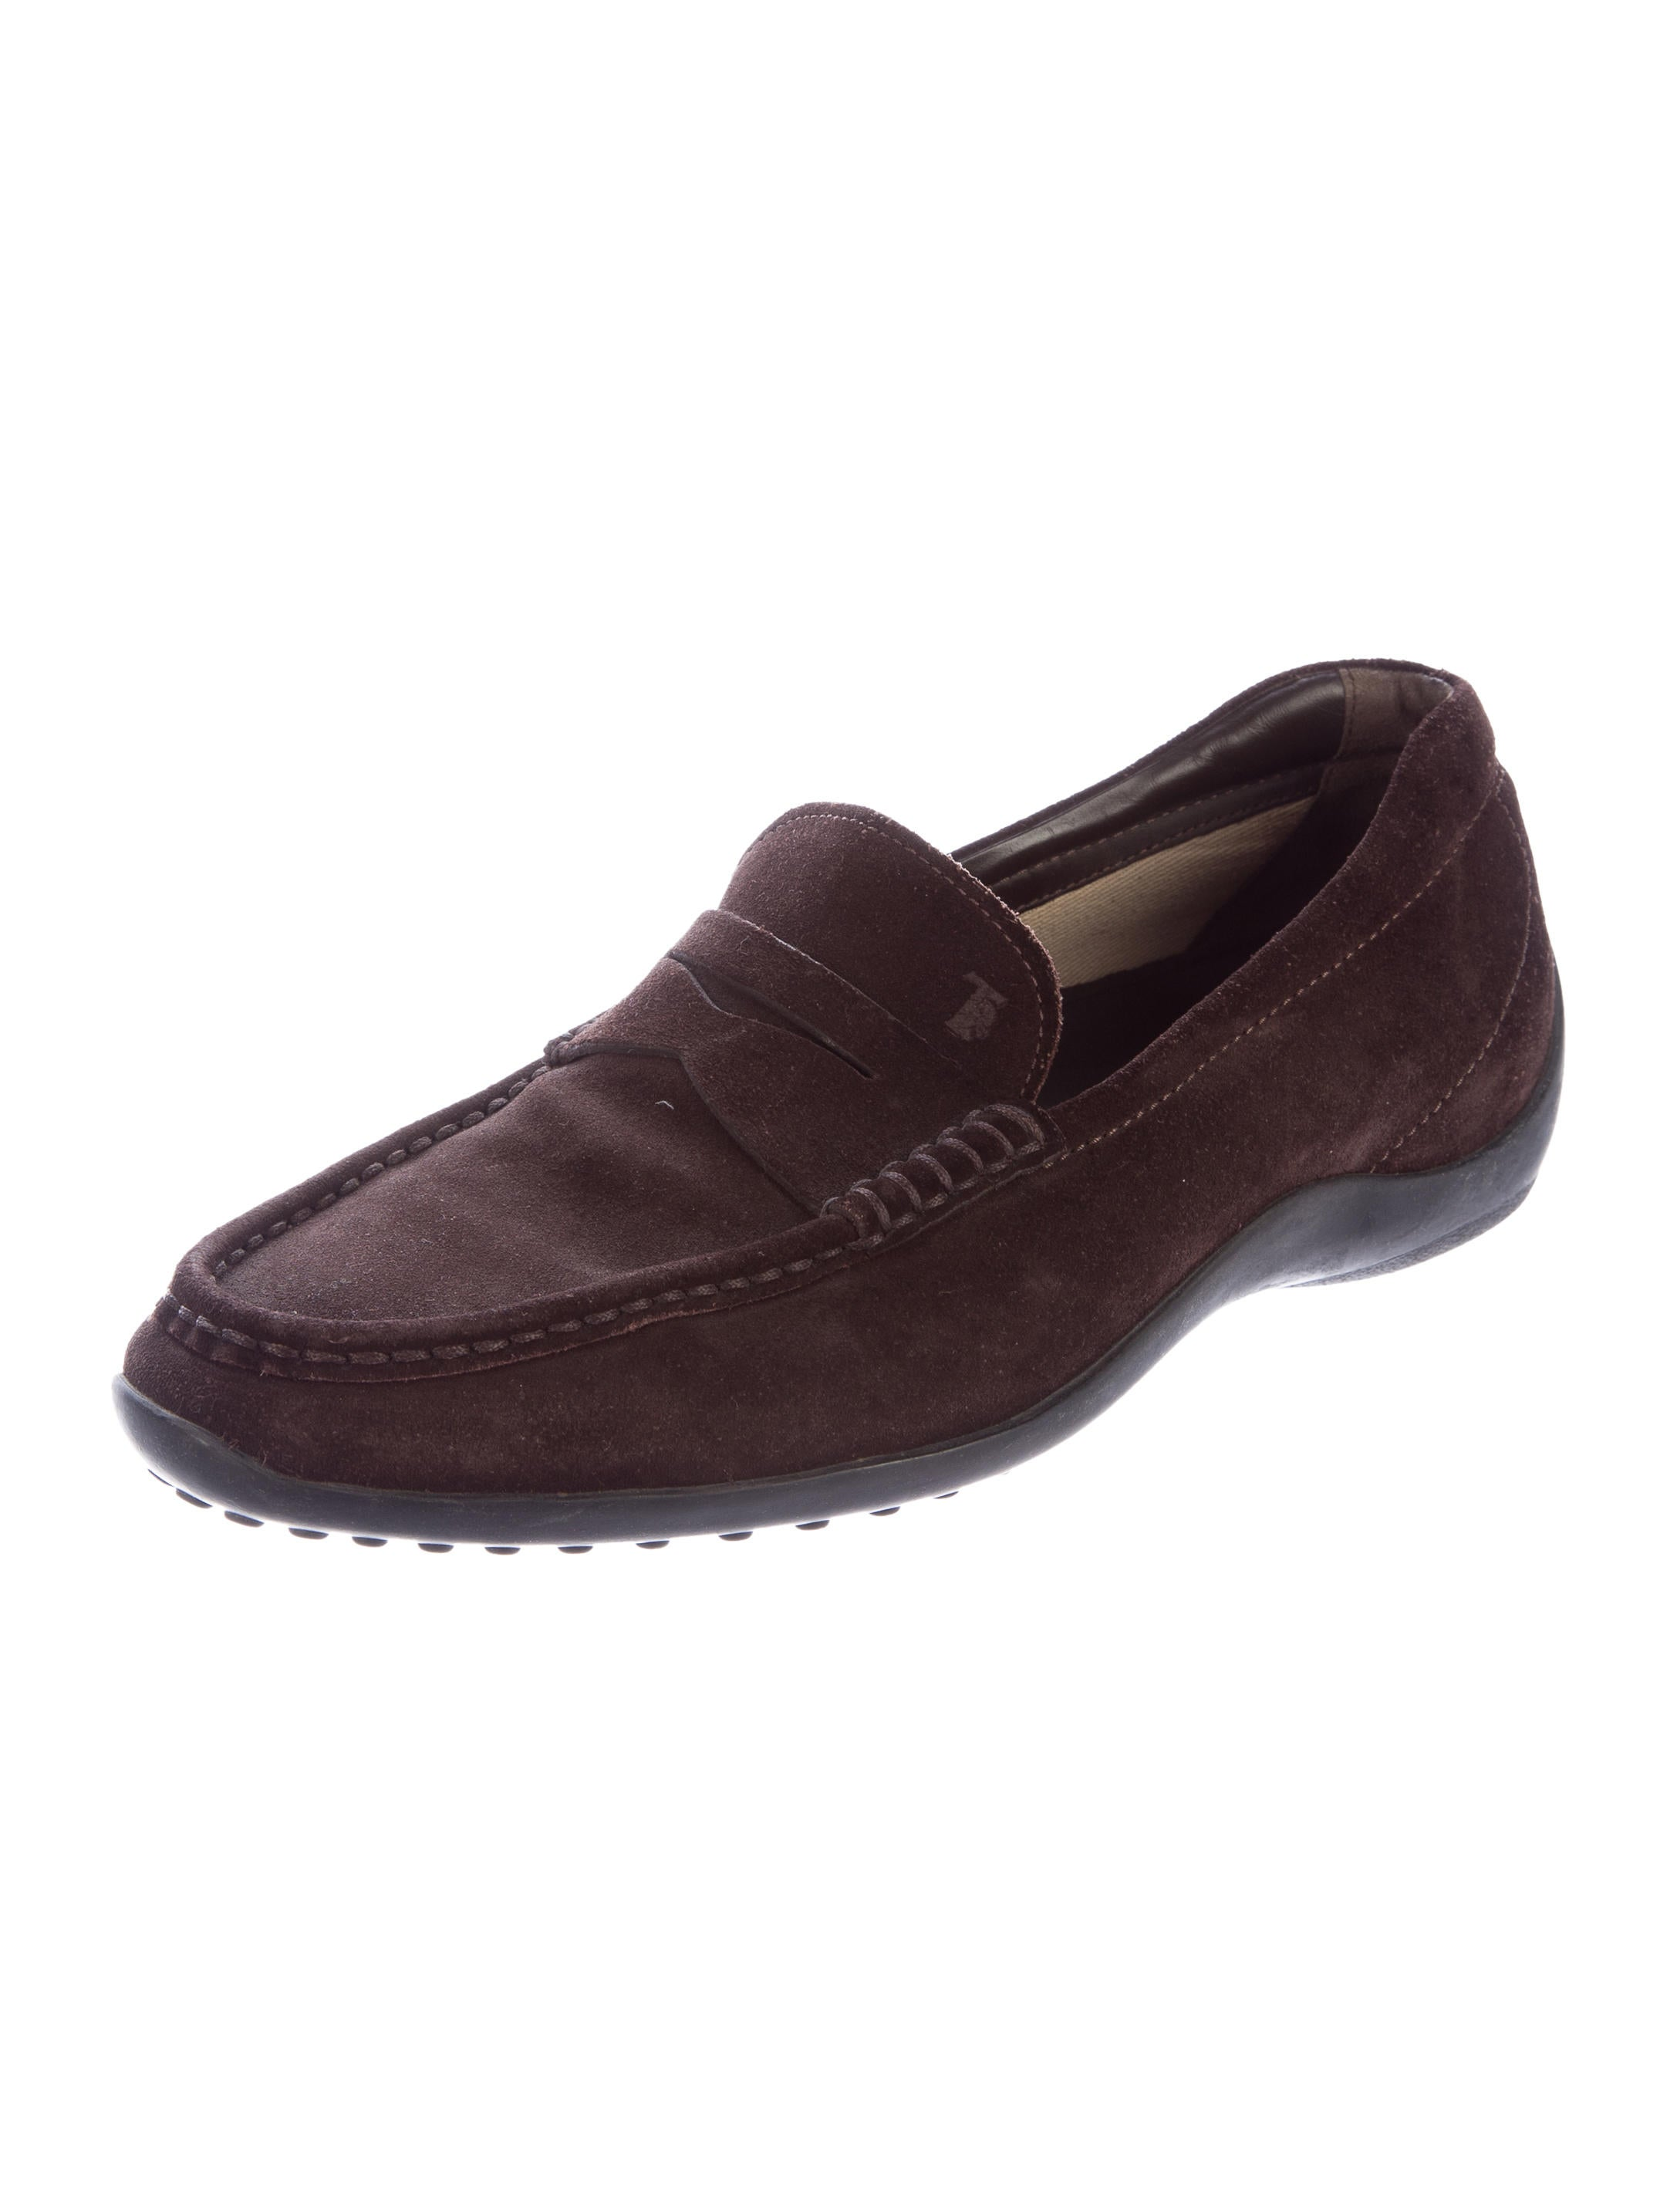 Mens Driving Penny Loafers Suede Moccasins Slip On Casual Dress Boat Shoes. from $ 17 89 Prime. out of 5 stars Cole Haan. Men's Pinch Friday Contemporary Penny Loafer. from $ 51 21 Prime. out of 5 stars HKR. Women Platform Slip On Loafers Comfort Suede .